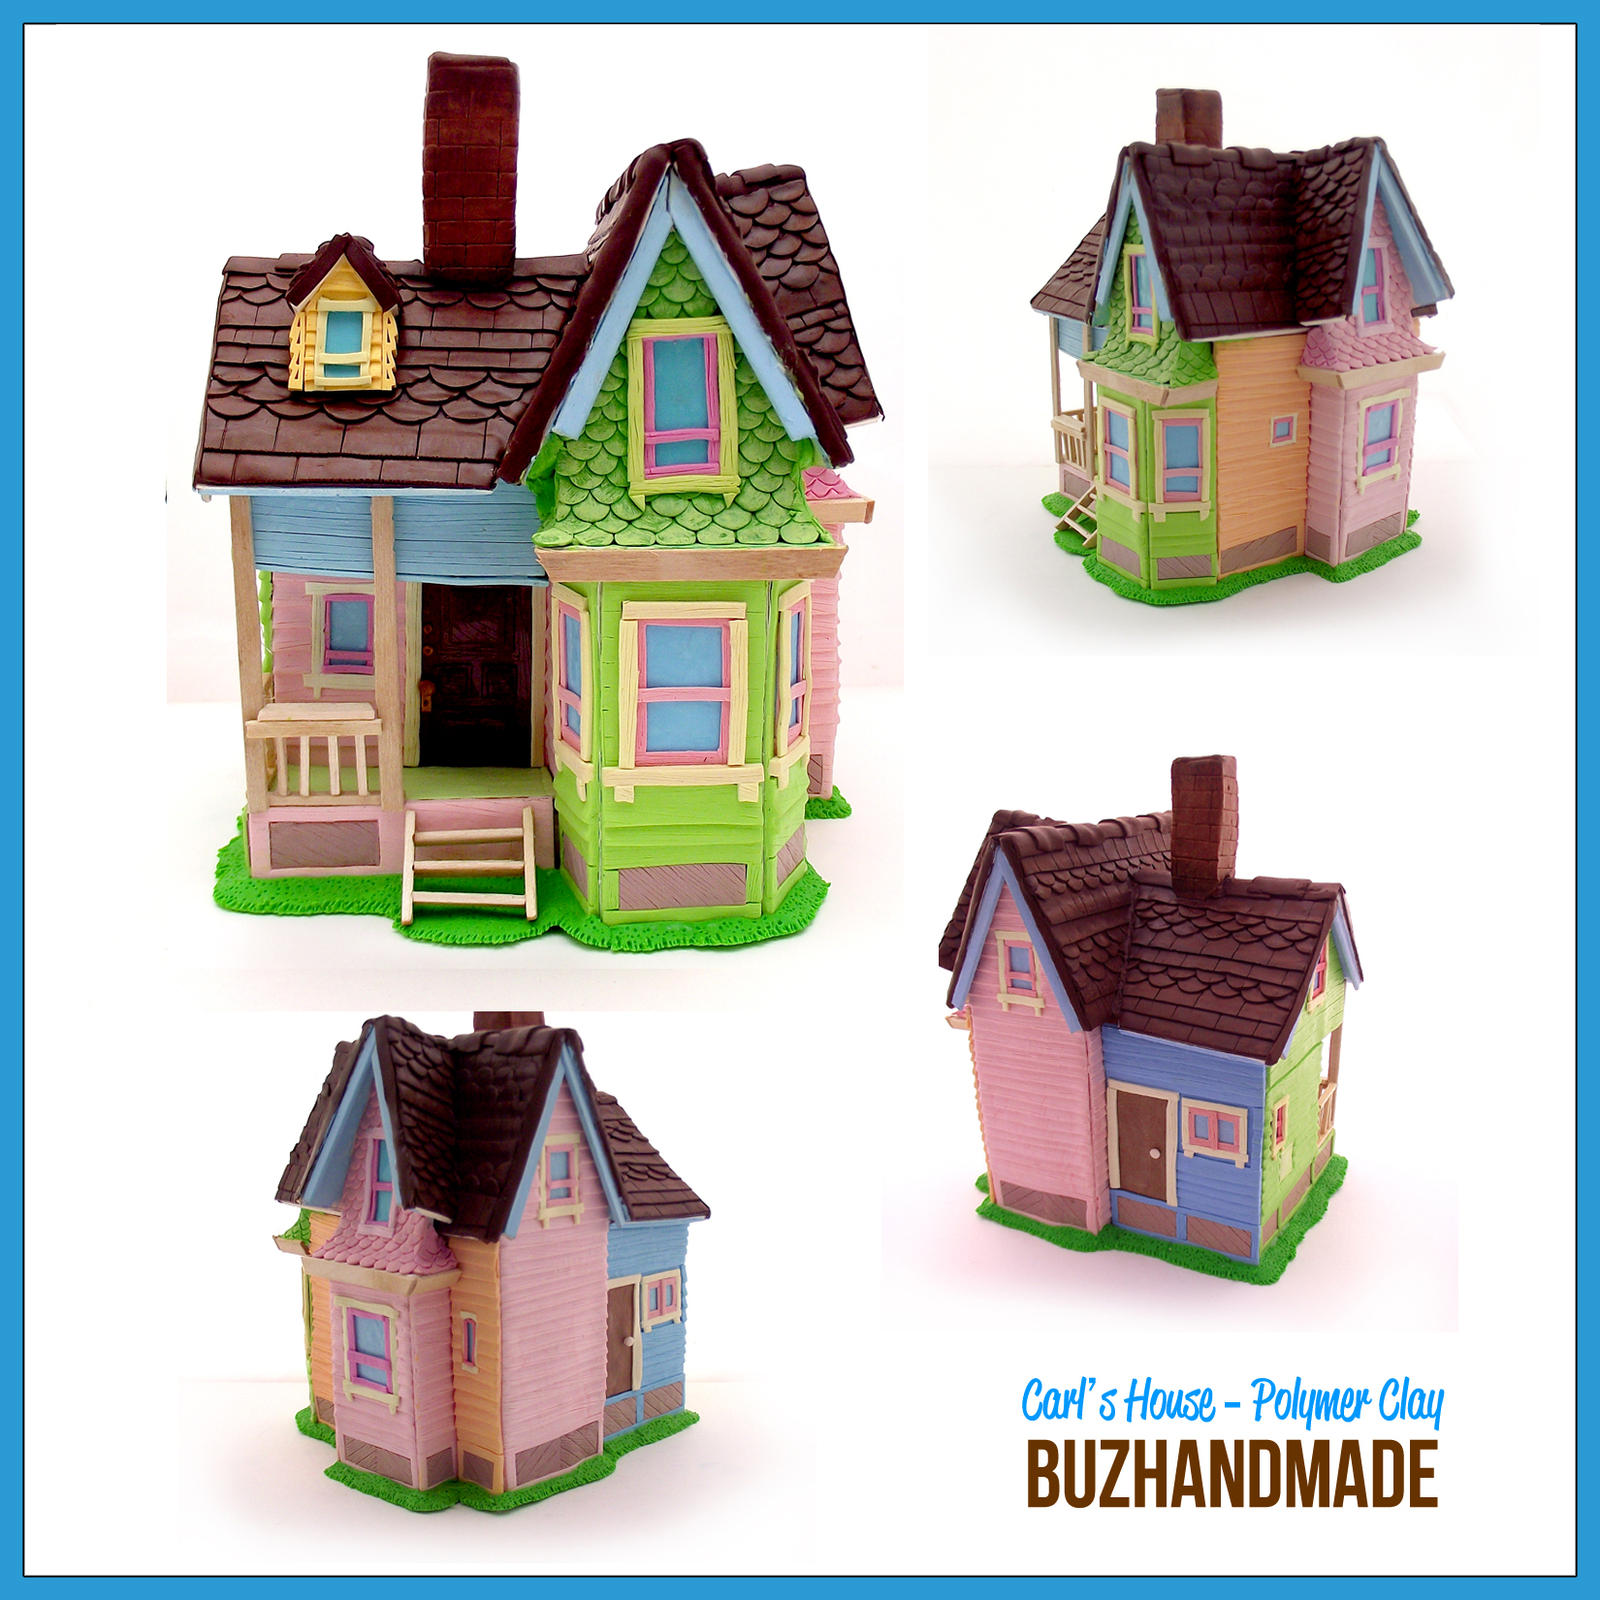 Carl's House - Polymer CLAY by ~buzhandmade